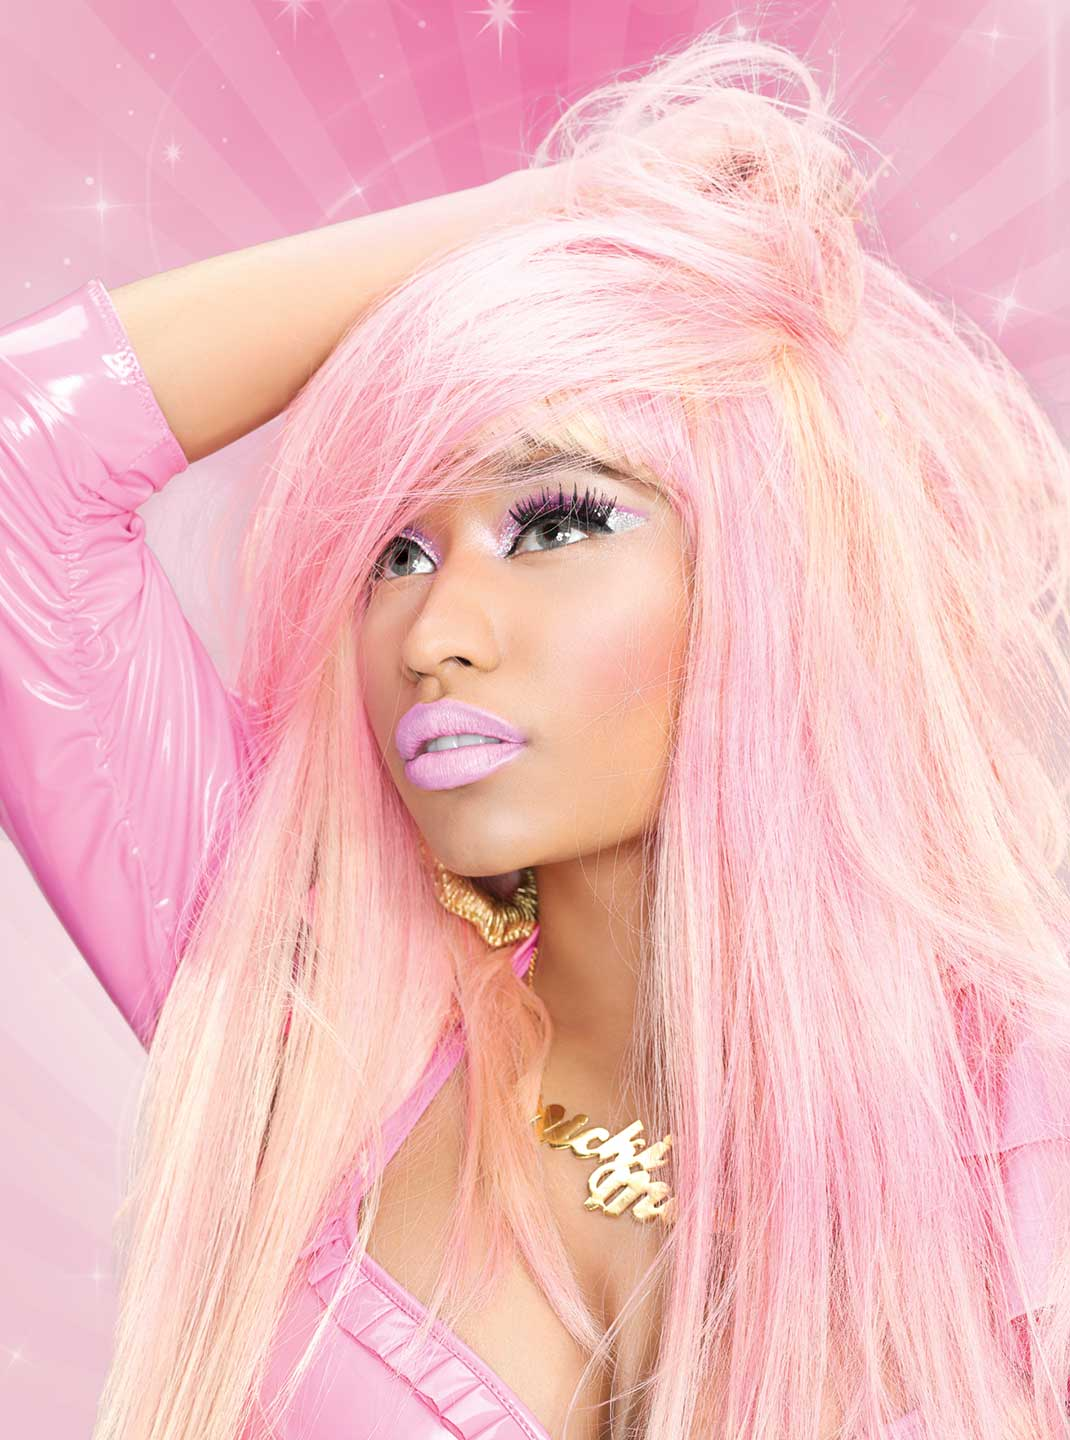 Howard-Huang-Nicki-Box-Perfume.jpg